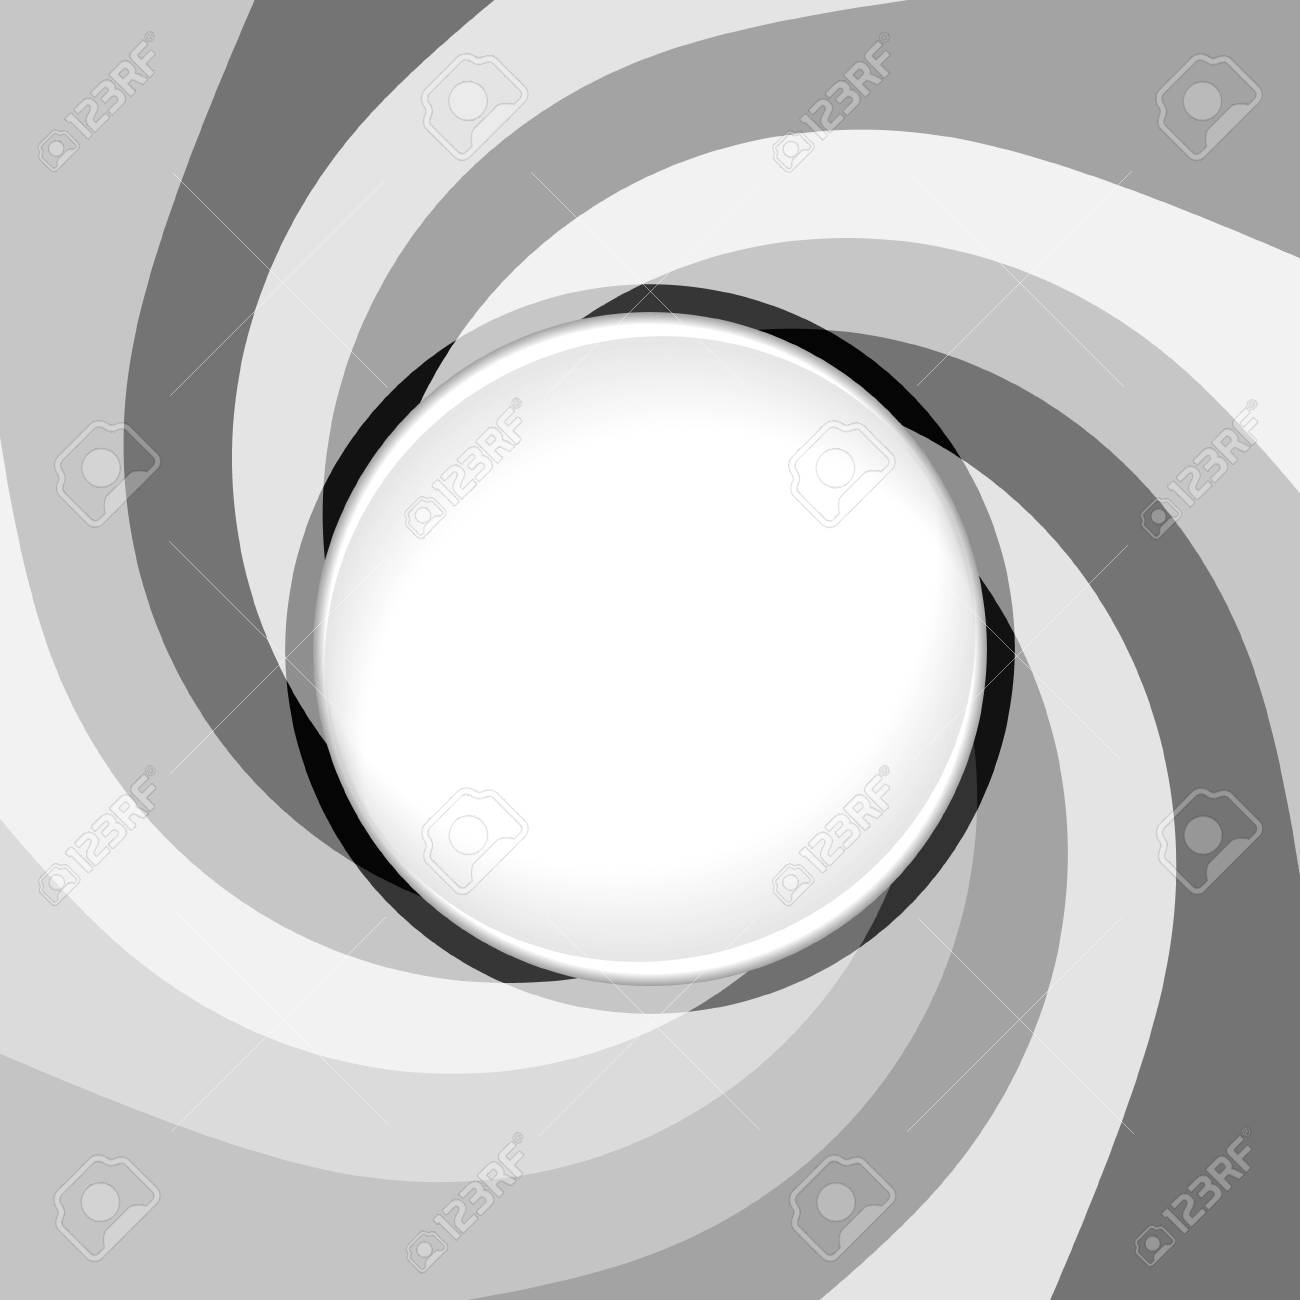 Abstract gray background with whirlpool. Place for your text. Stock Vector - 25402952